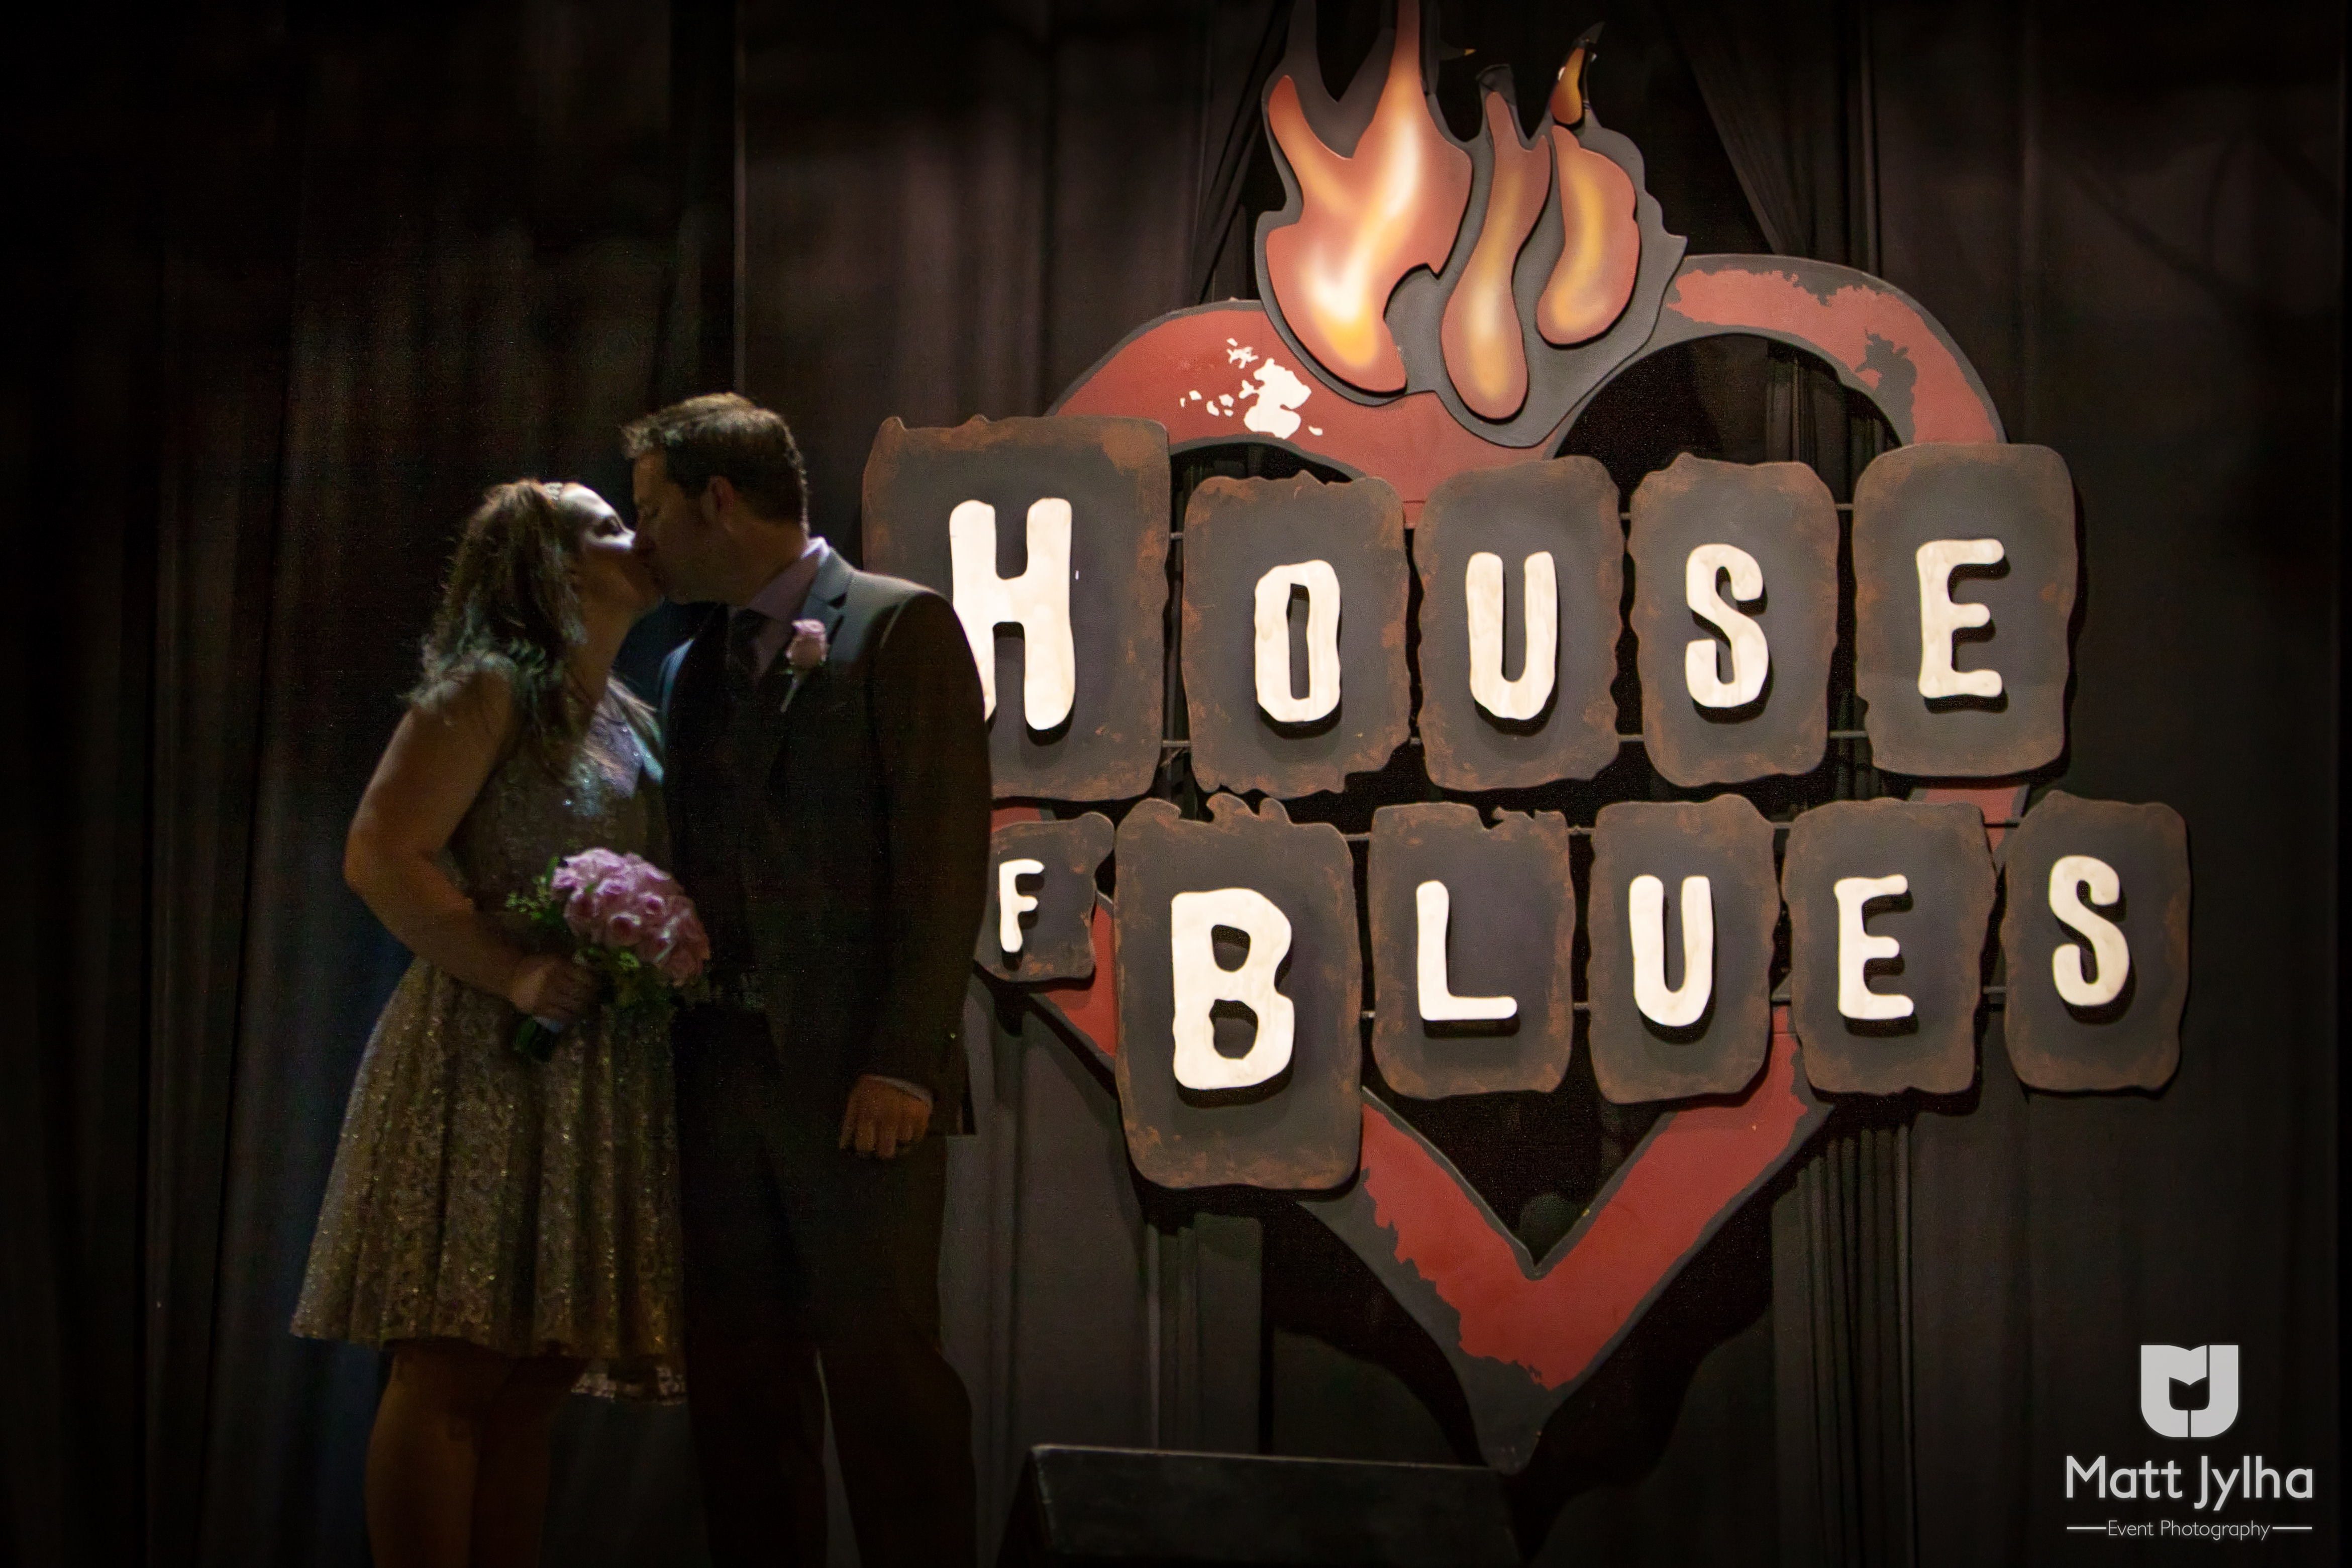 House_of_Blues_Photographer_Matt_Jylha_063